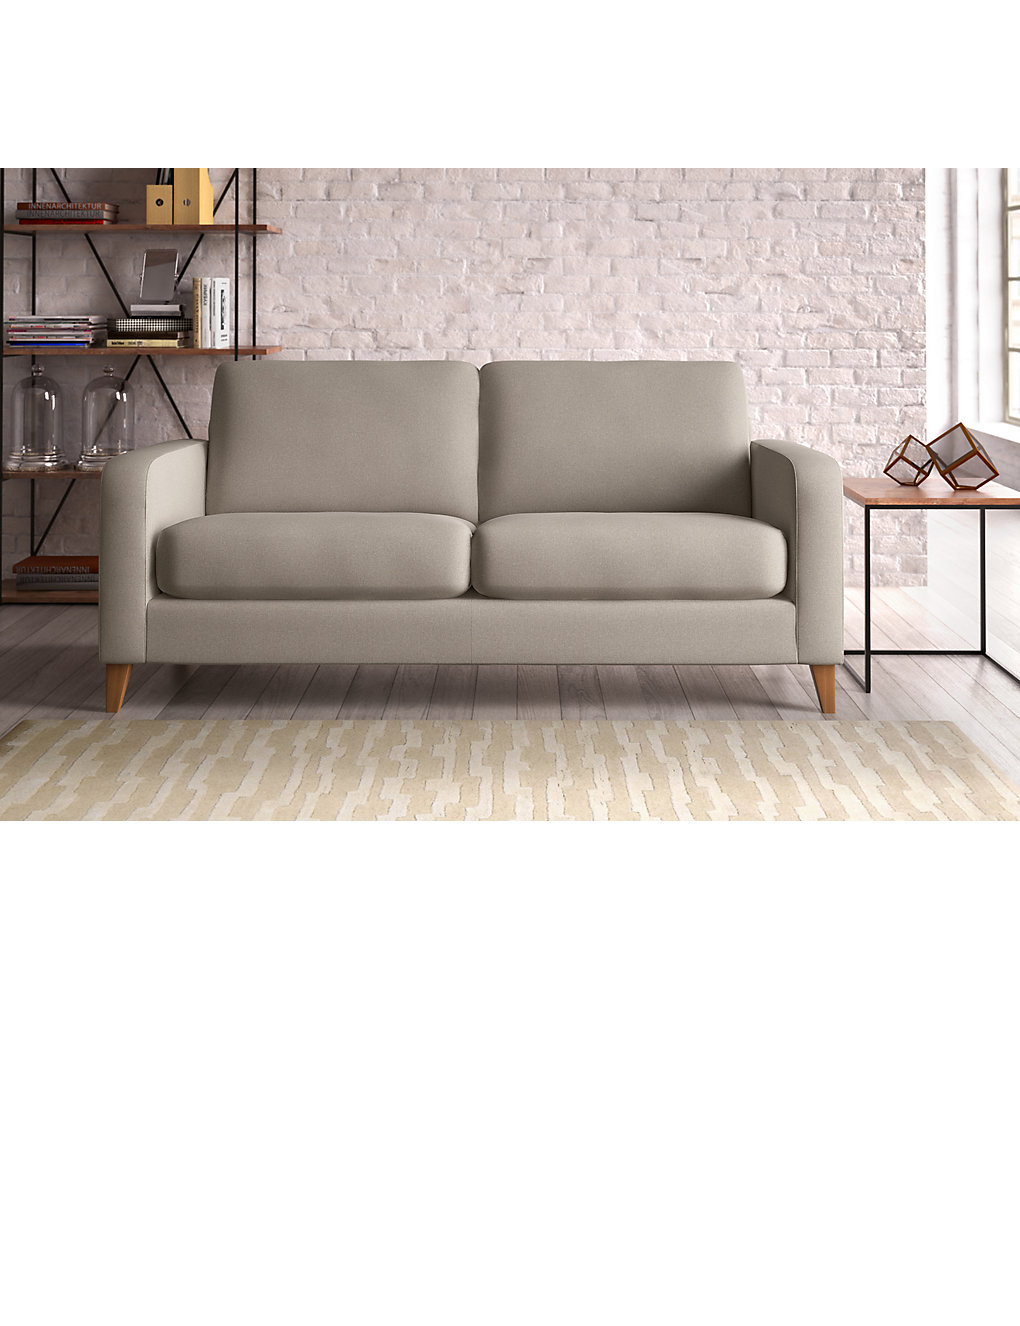 Marks And Spencer Sofa Reviews Sofa Menzilperde Net: tromso corner sofa bed review